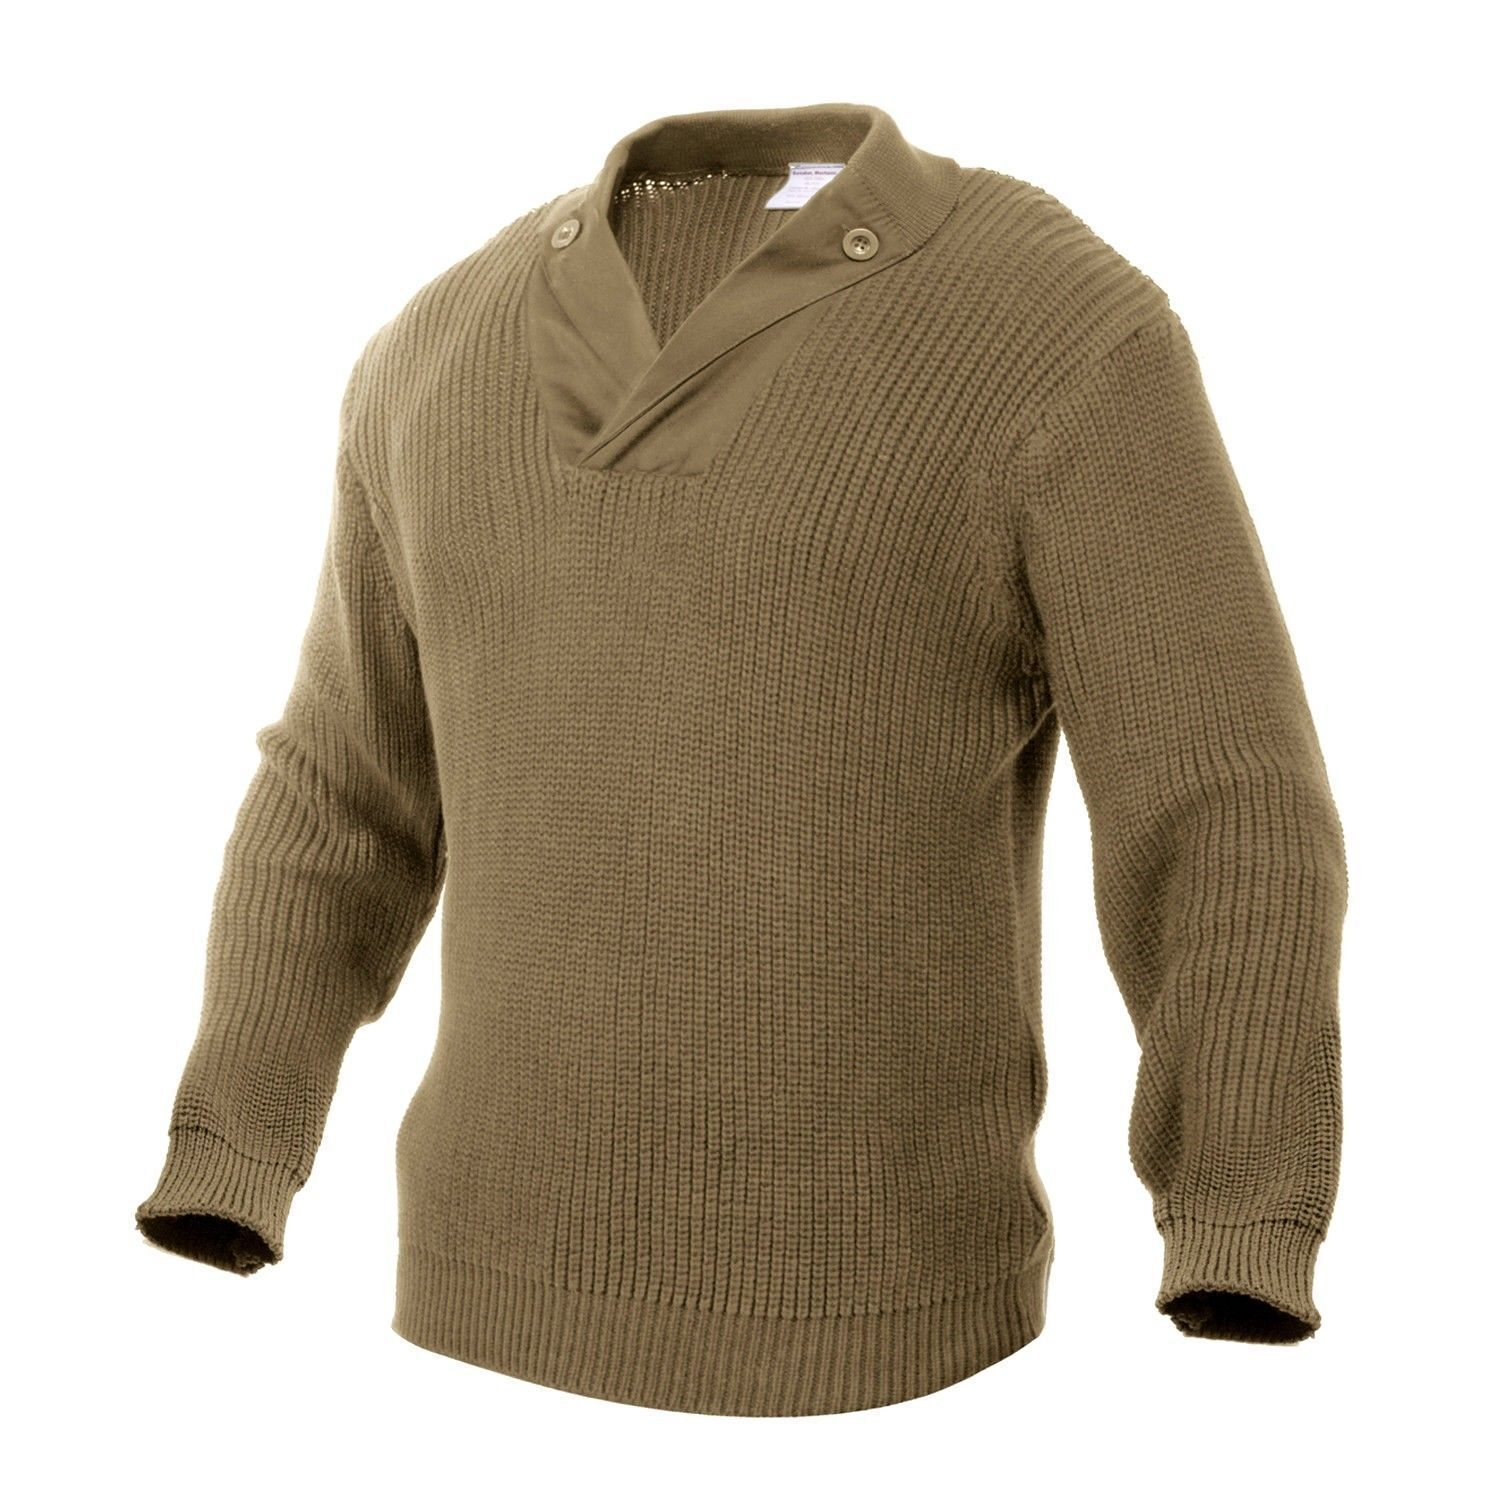 ROTHCO 5349 WWII VINTAGE KHAKI MECHANICS SWEATERS 100% KNIT COTTON  SIZES S-3X